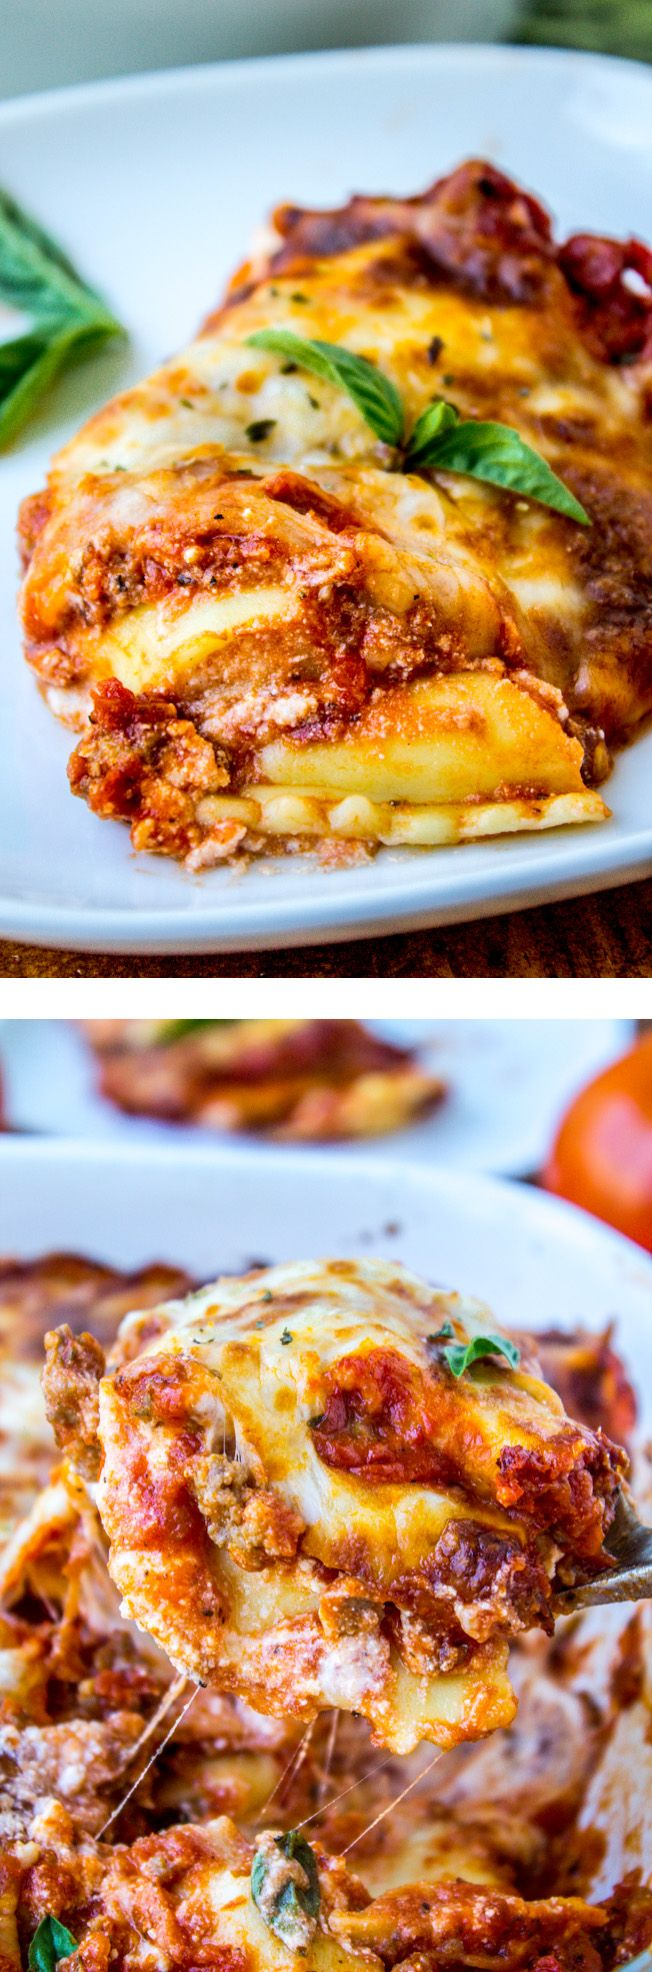 Easy Cheesy Ravioli Lasagna from The Food Charlatan // Hearty no-brainer dinner to make on busy back-to-school nights.